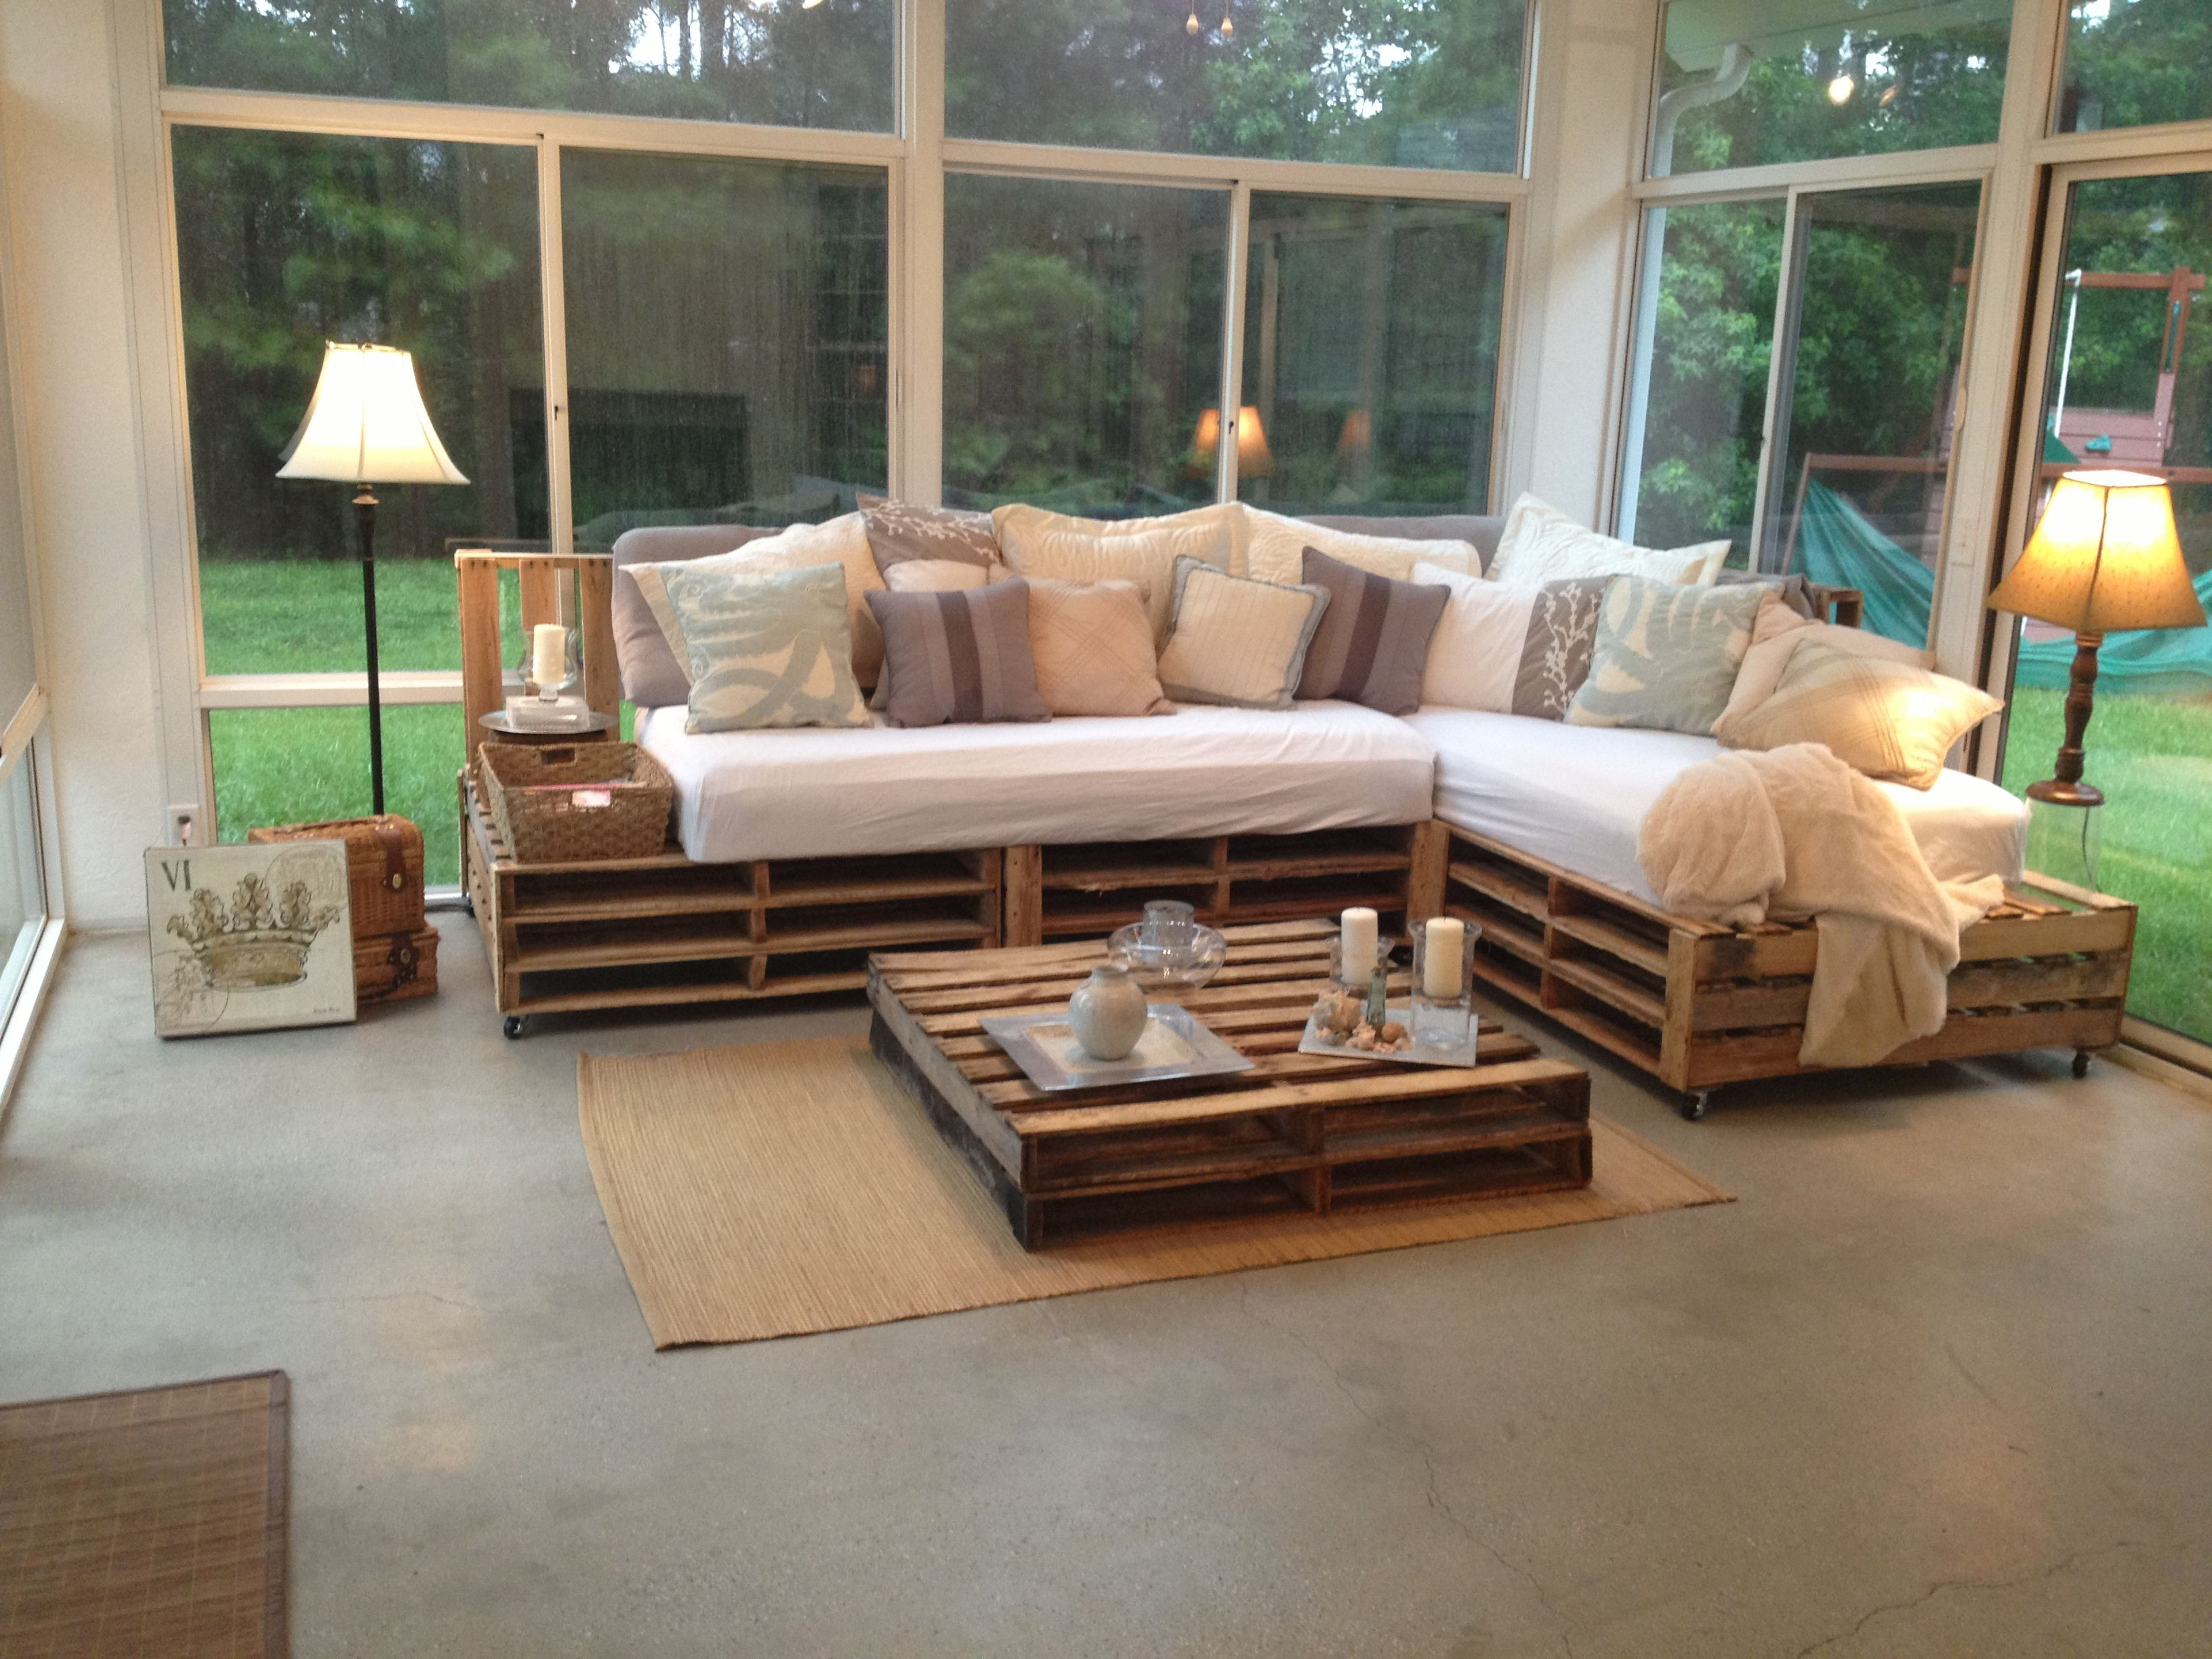 Best ideas about Pallet Furniture Ideas . Save or Pin Finally my very own first pallet project is plete Now.